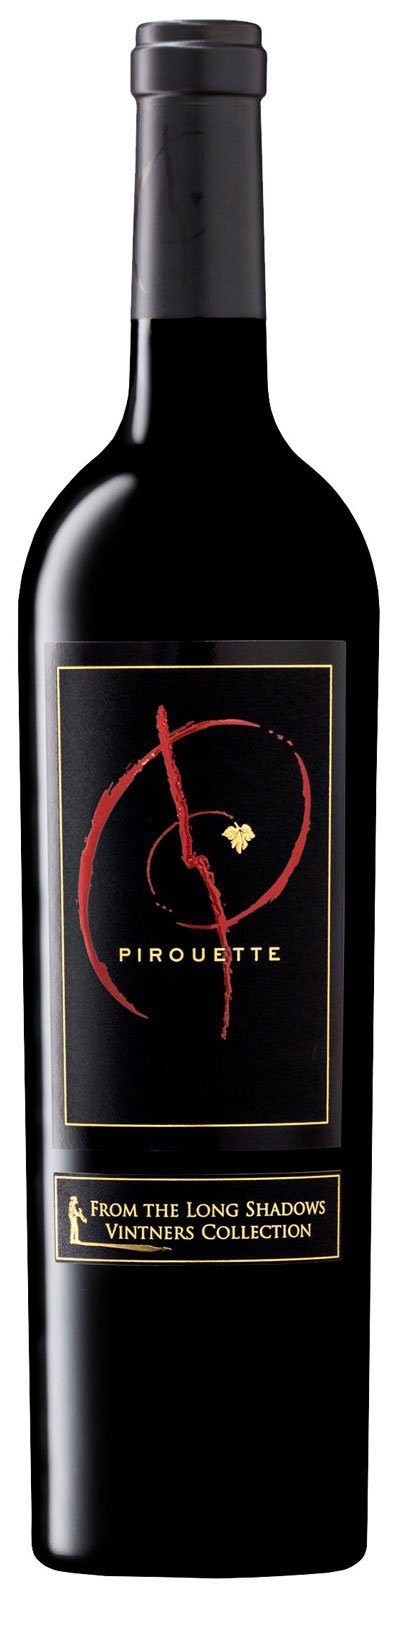 Long Shadows Pirouette (Bordeaux Blend) 2015